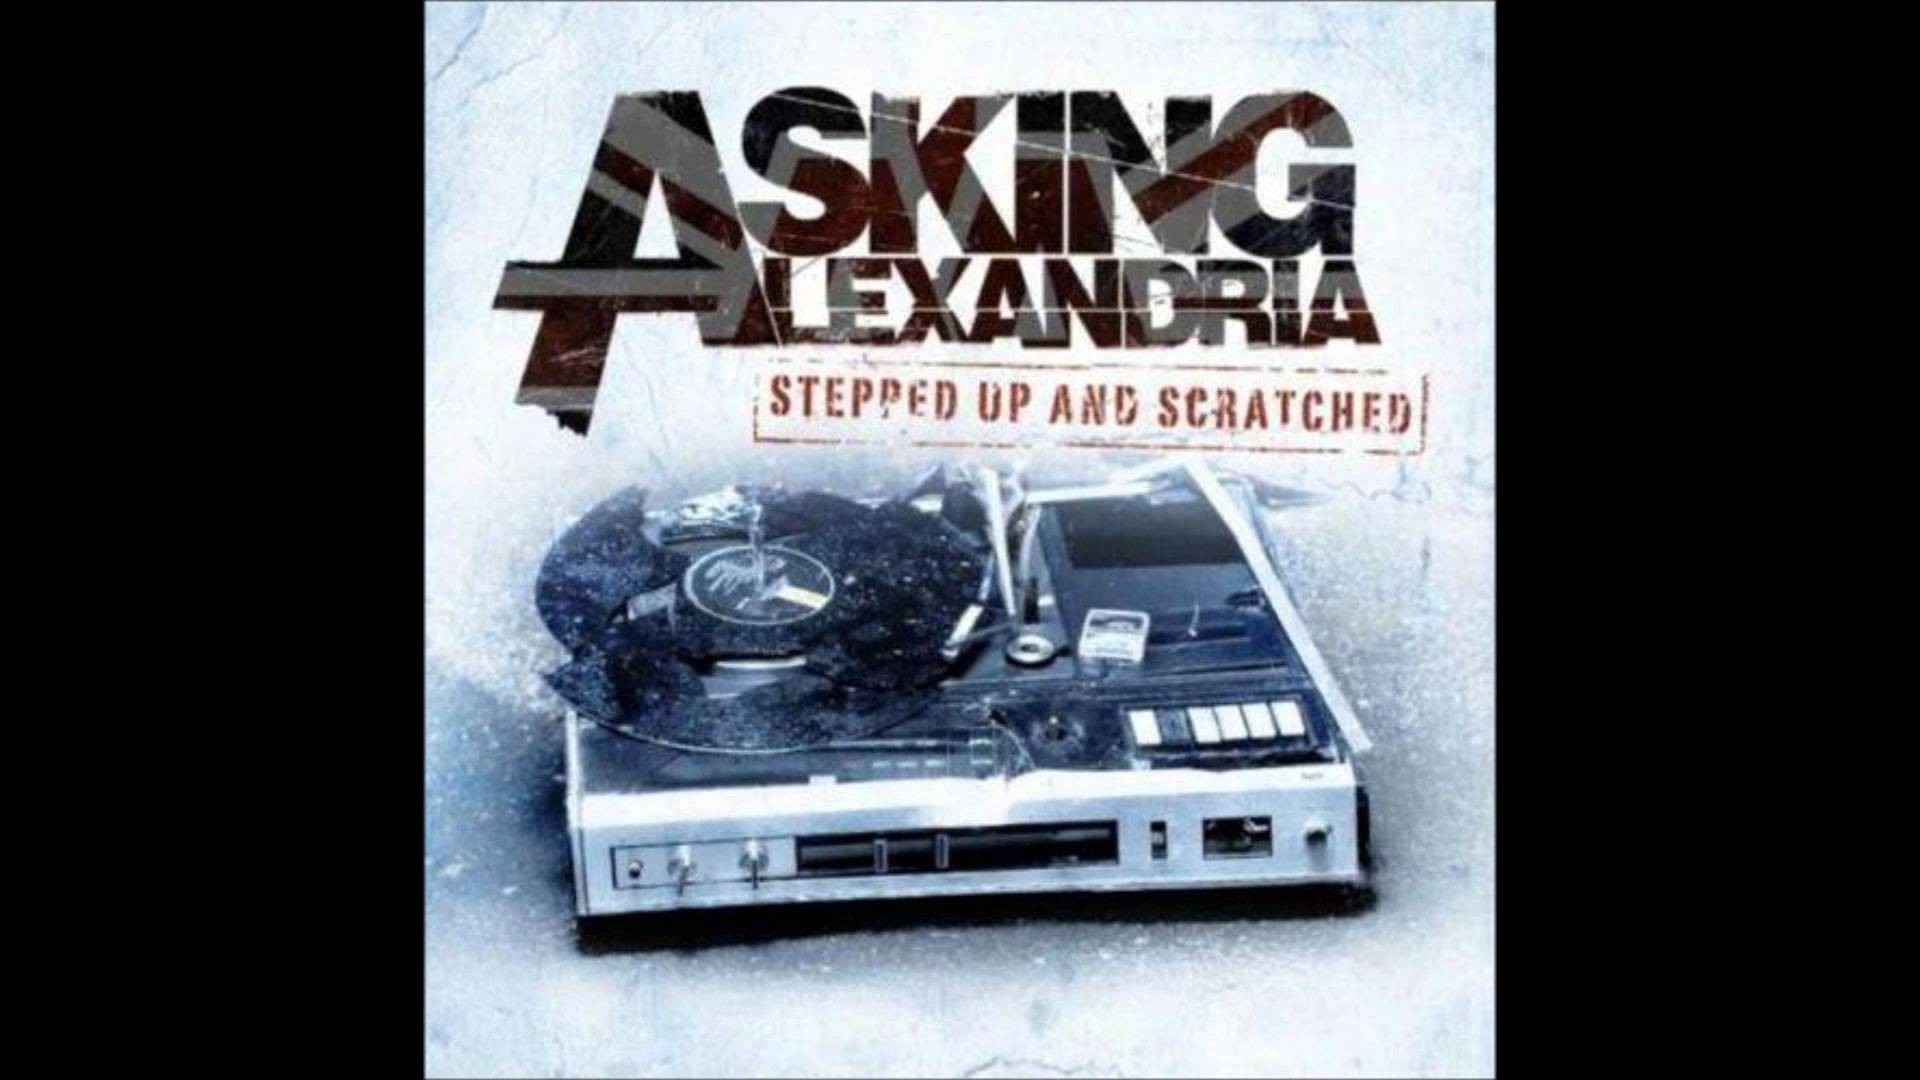 1920x1080 Asking Alexandria Stepped Up And Scratched